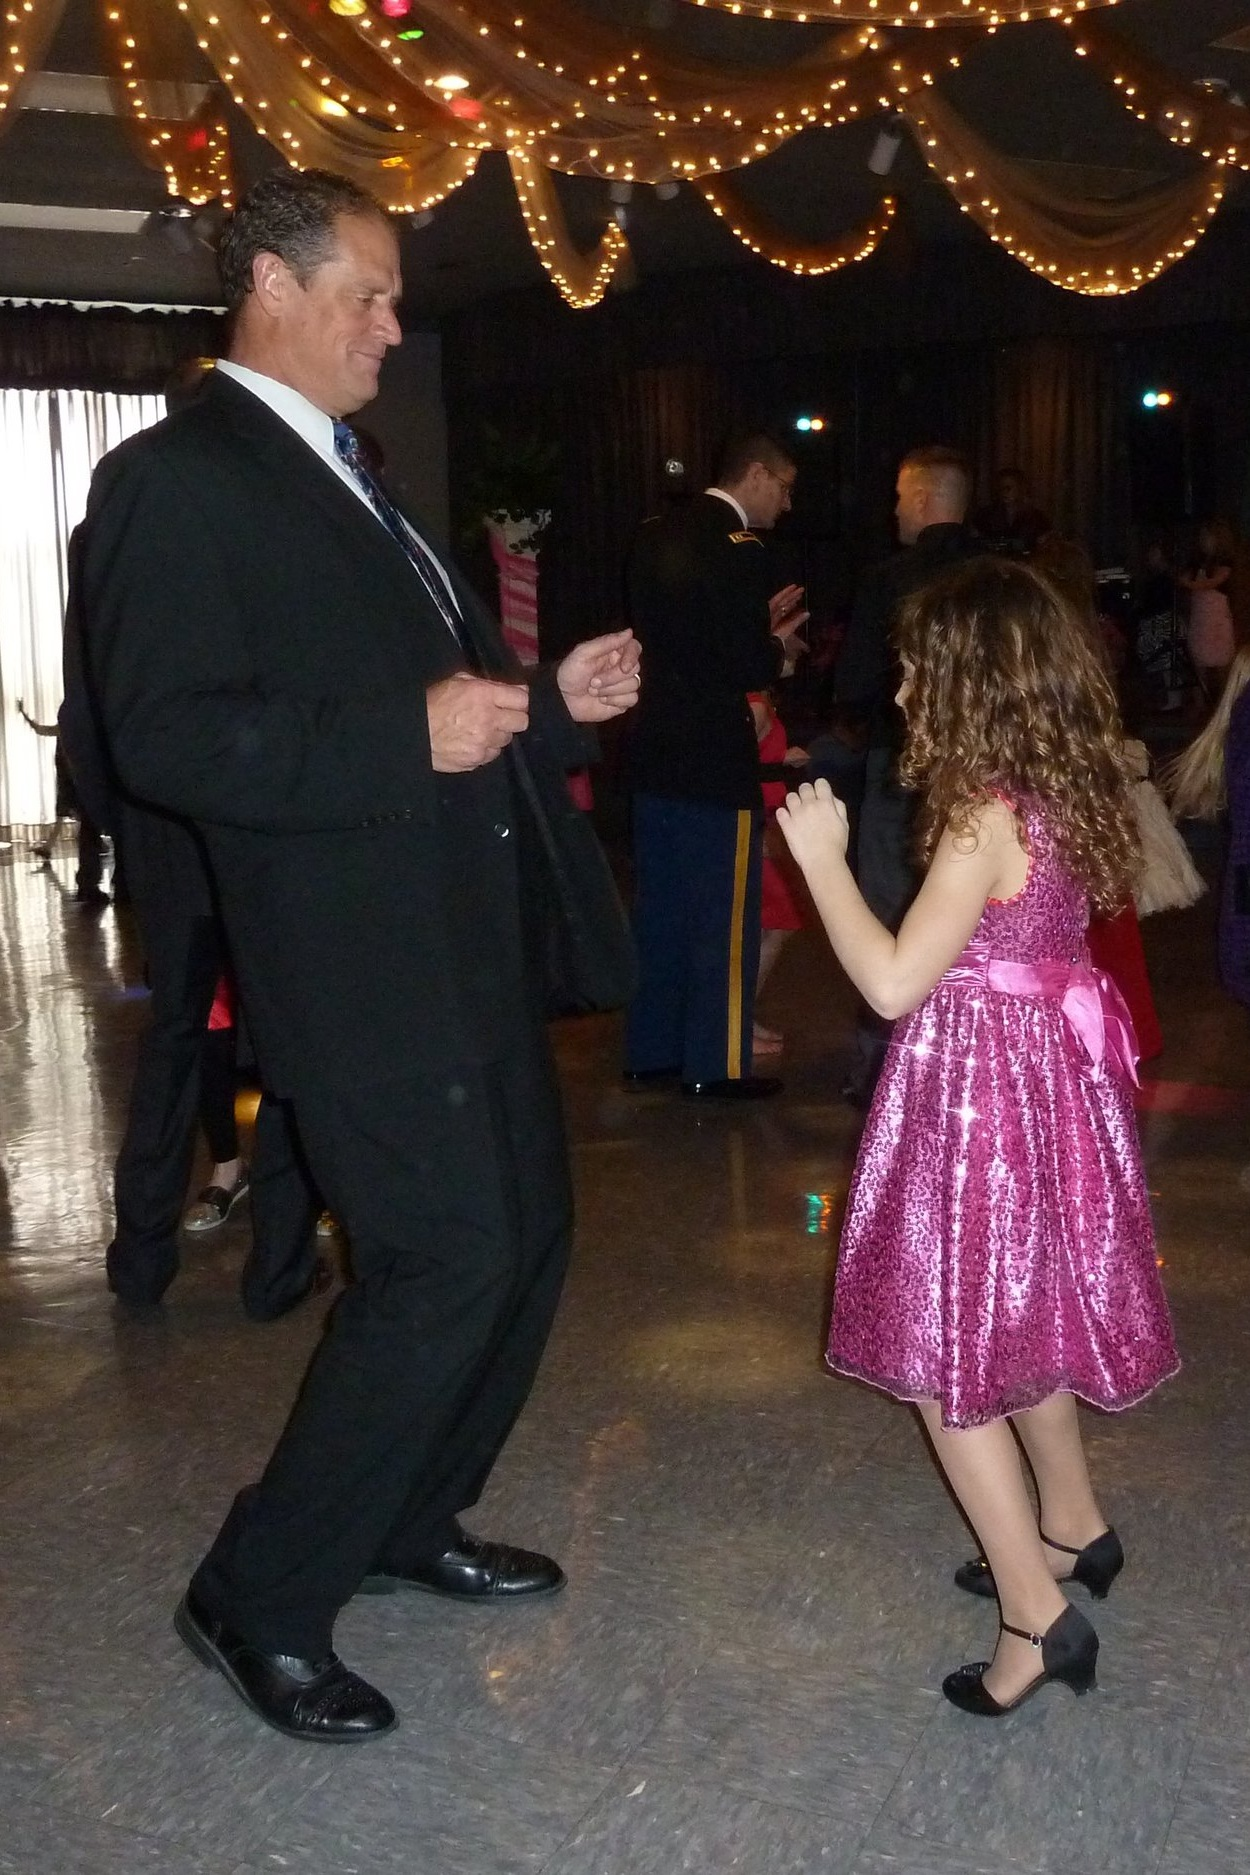 Good ole daddy-daughter dancing (this is not me, nor my father). (Photo via 417Magazine.com)